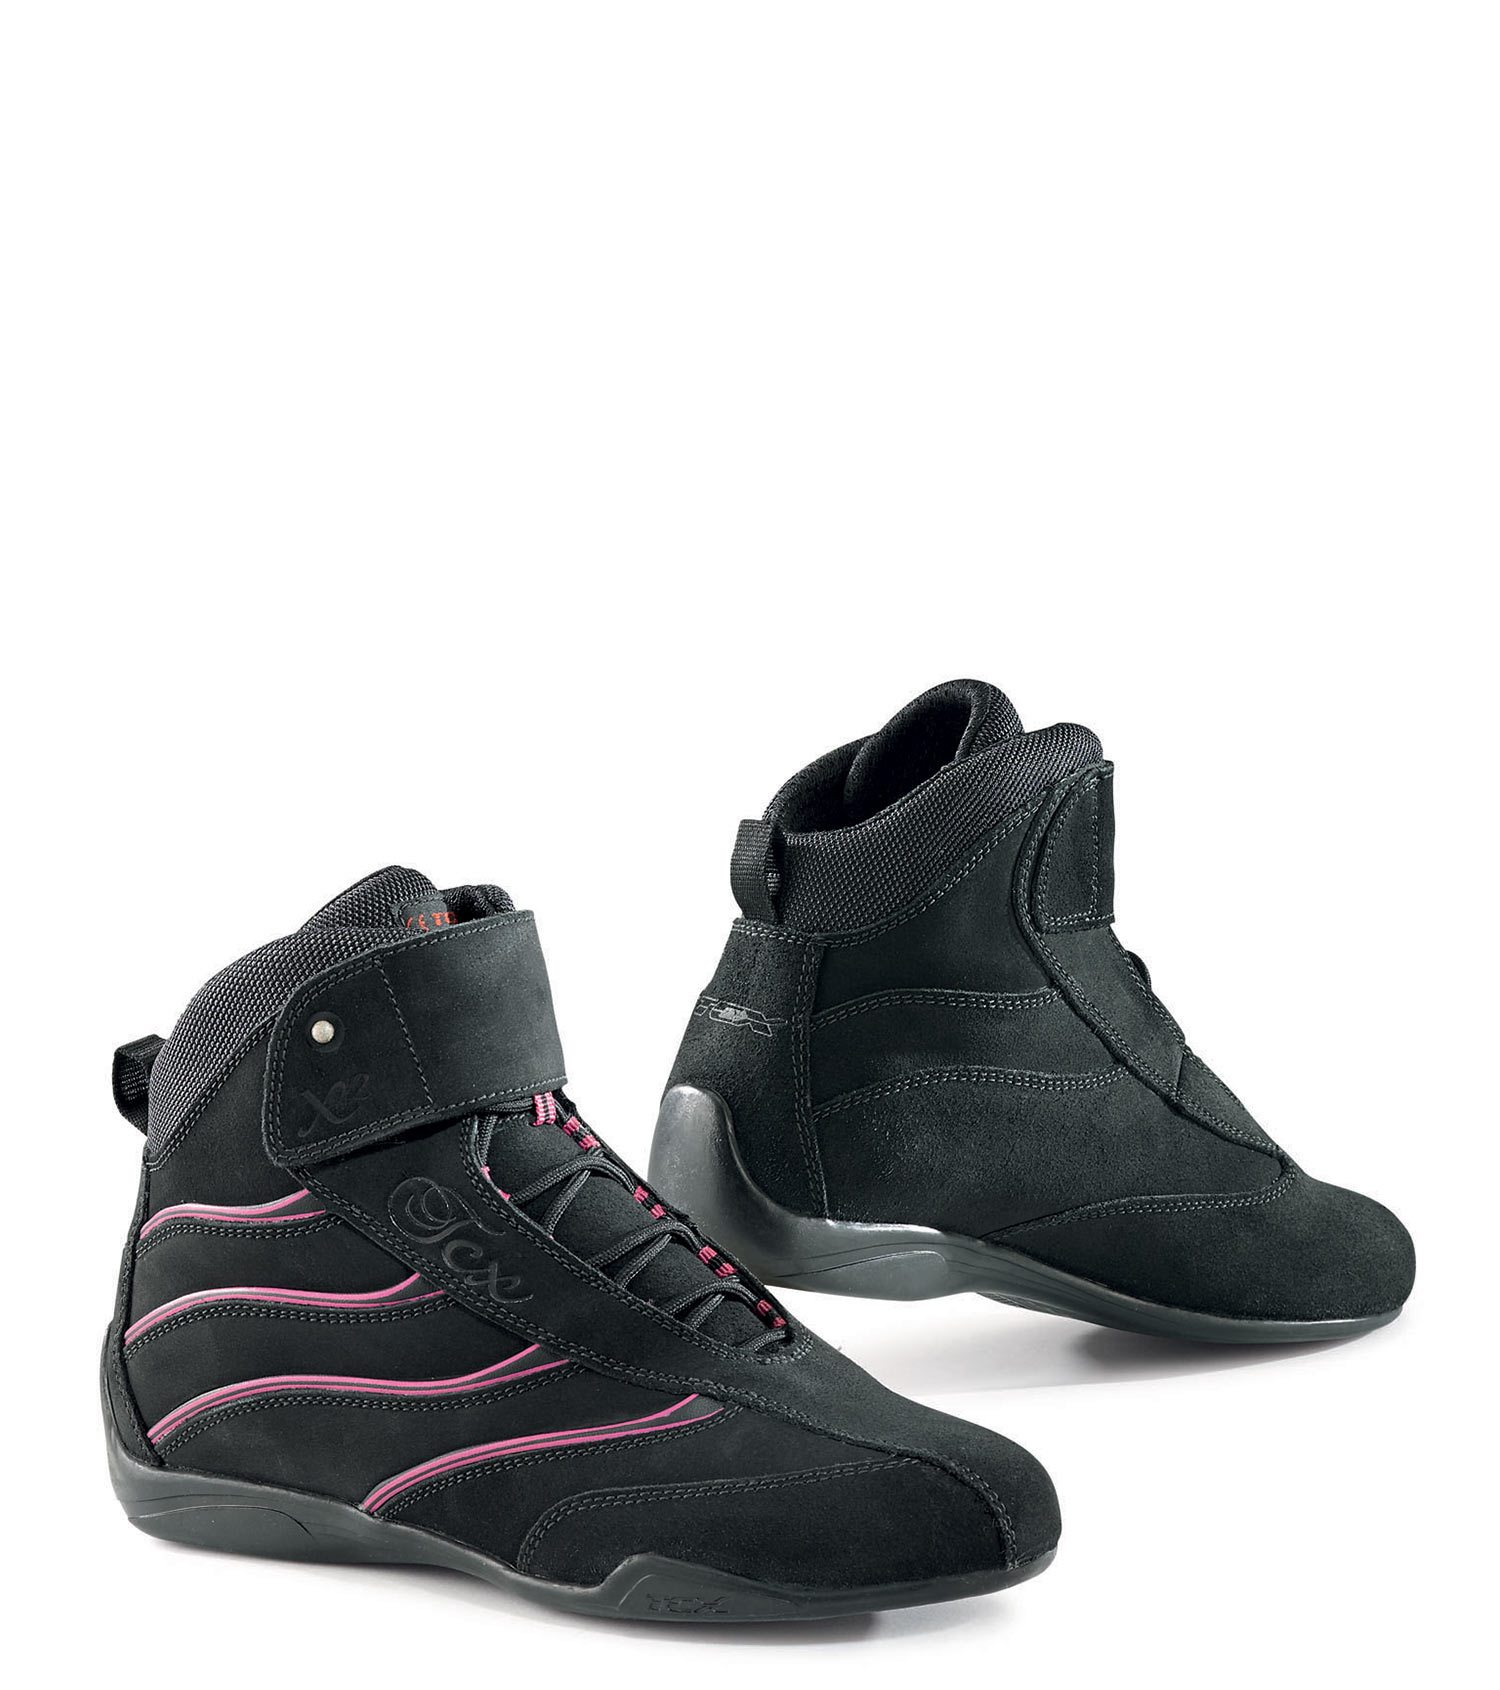 NEW-TCX-X-Square-Lady-Boots